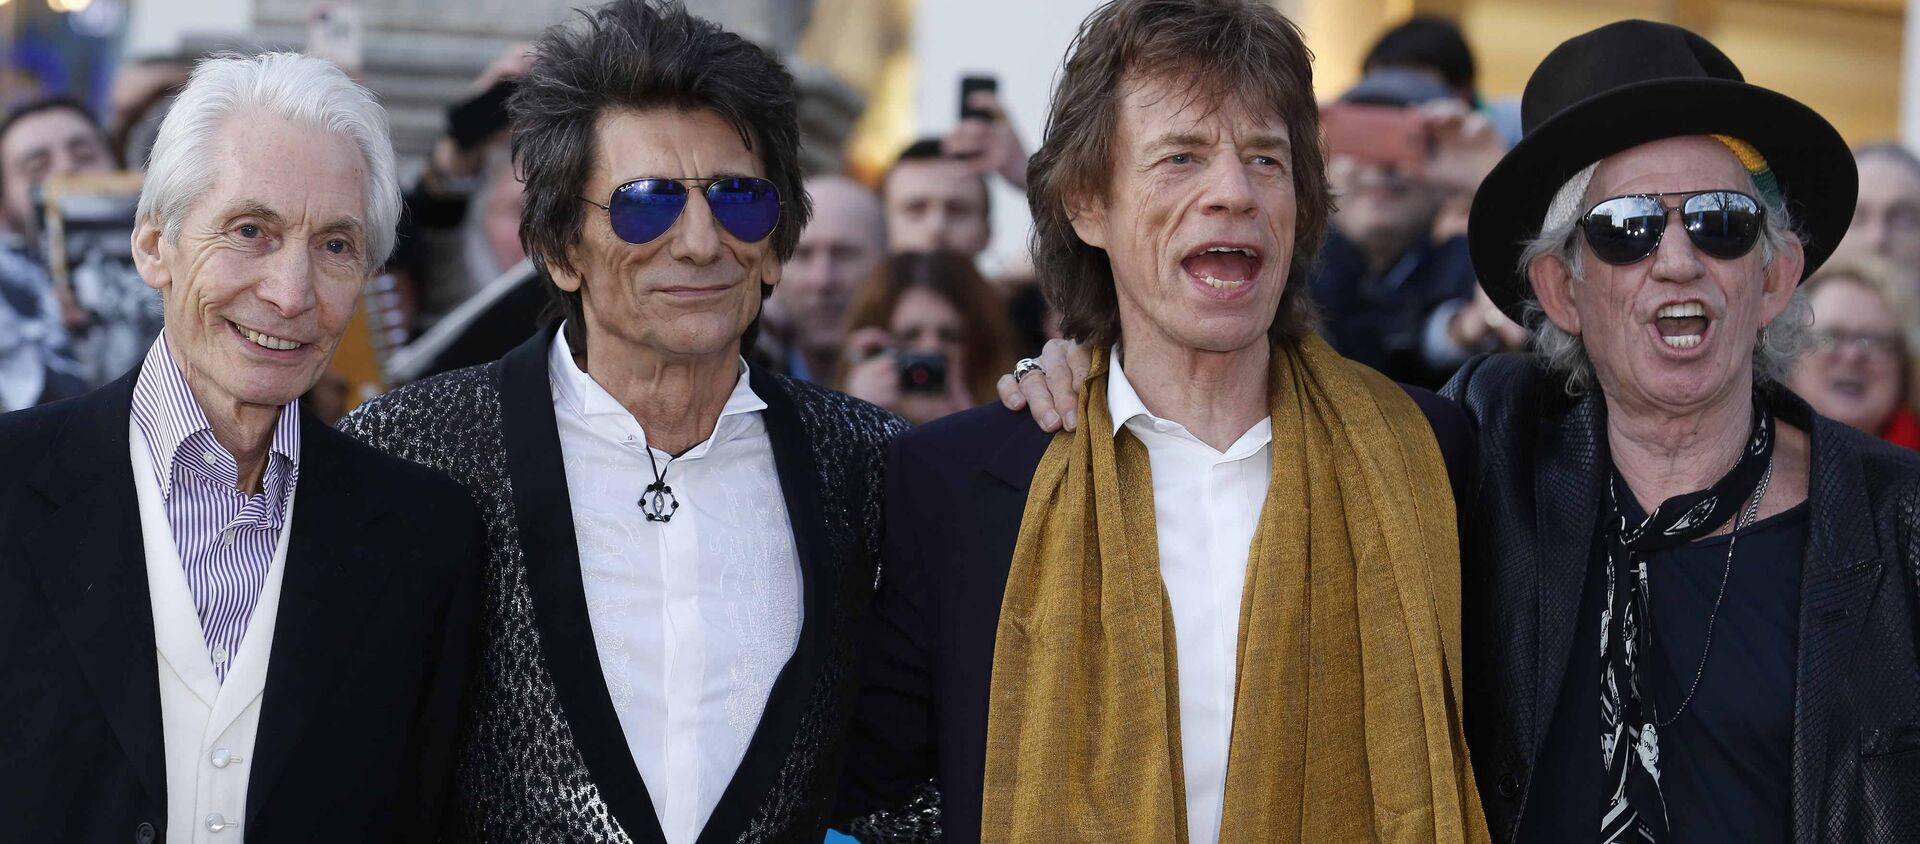 Members of the Rolling Stones (L-R) Charlie Watts, Ronnie Wood, Mick Jagger and Keith Richards. - Sputnik International, 1920, 28.06.2020